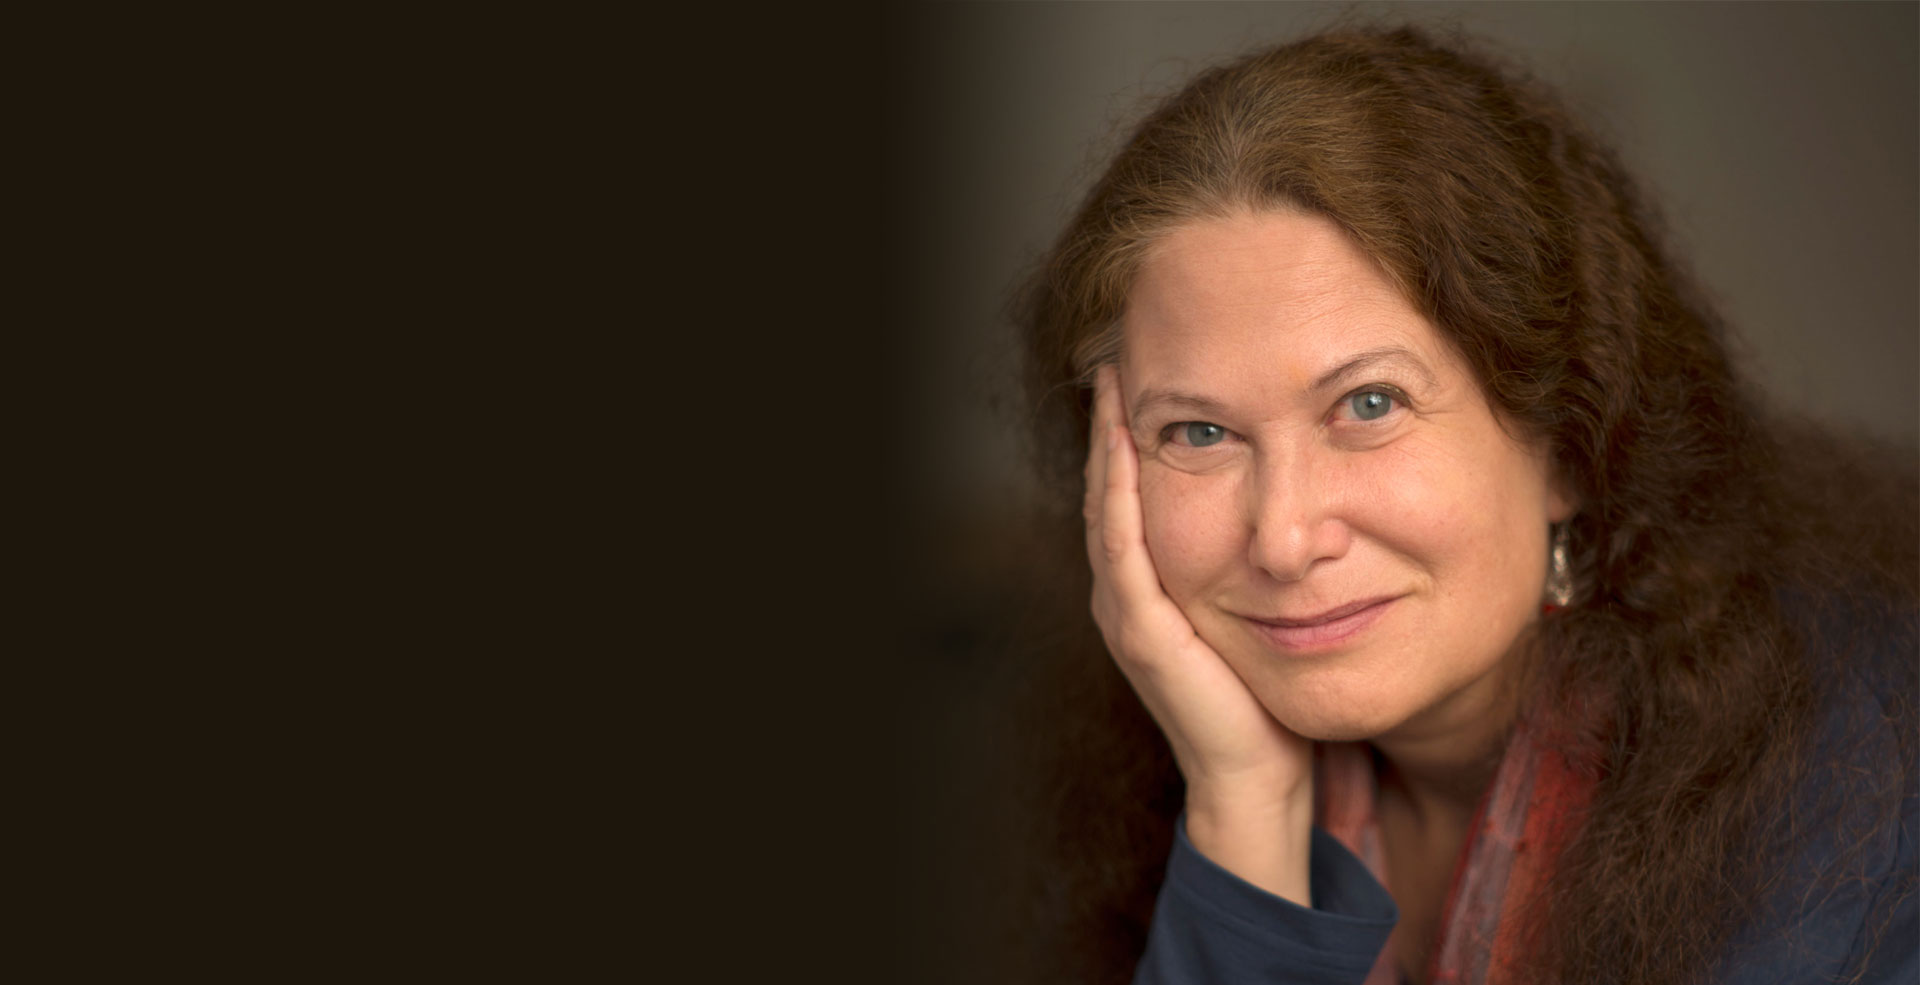 Poet Jane Hirshfield